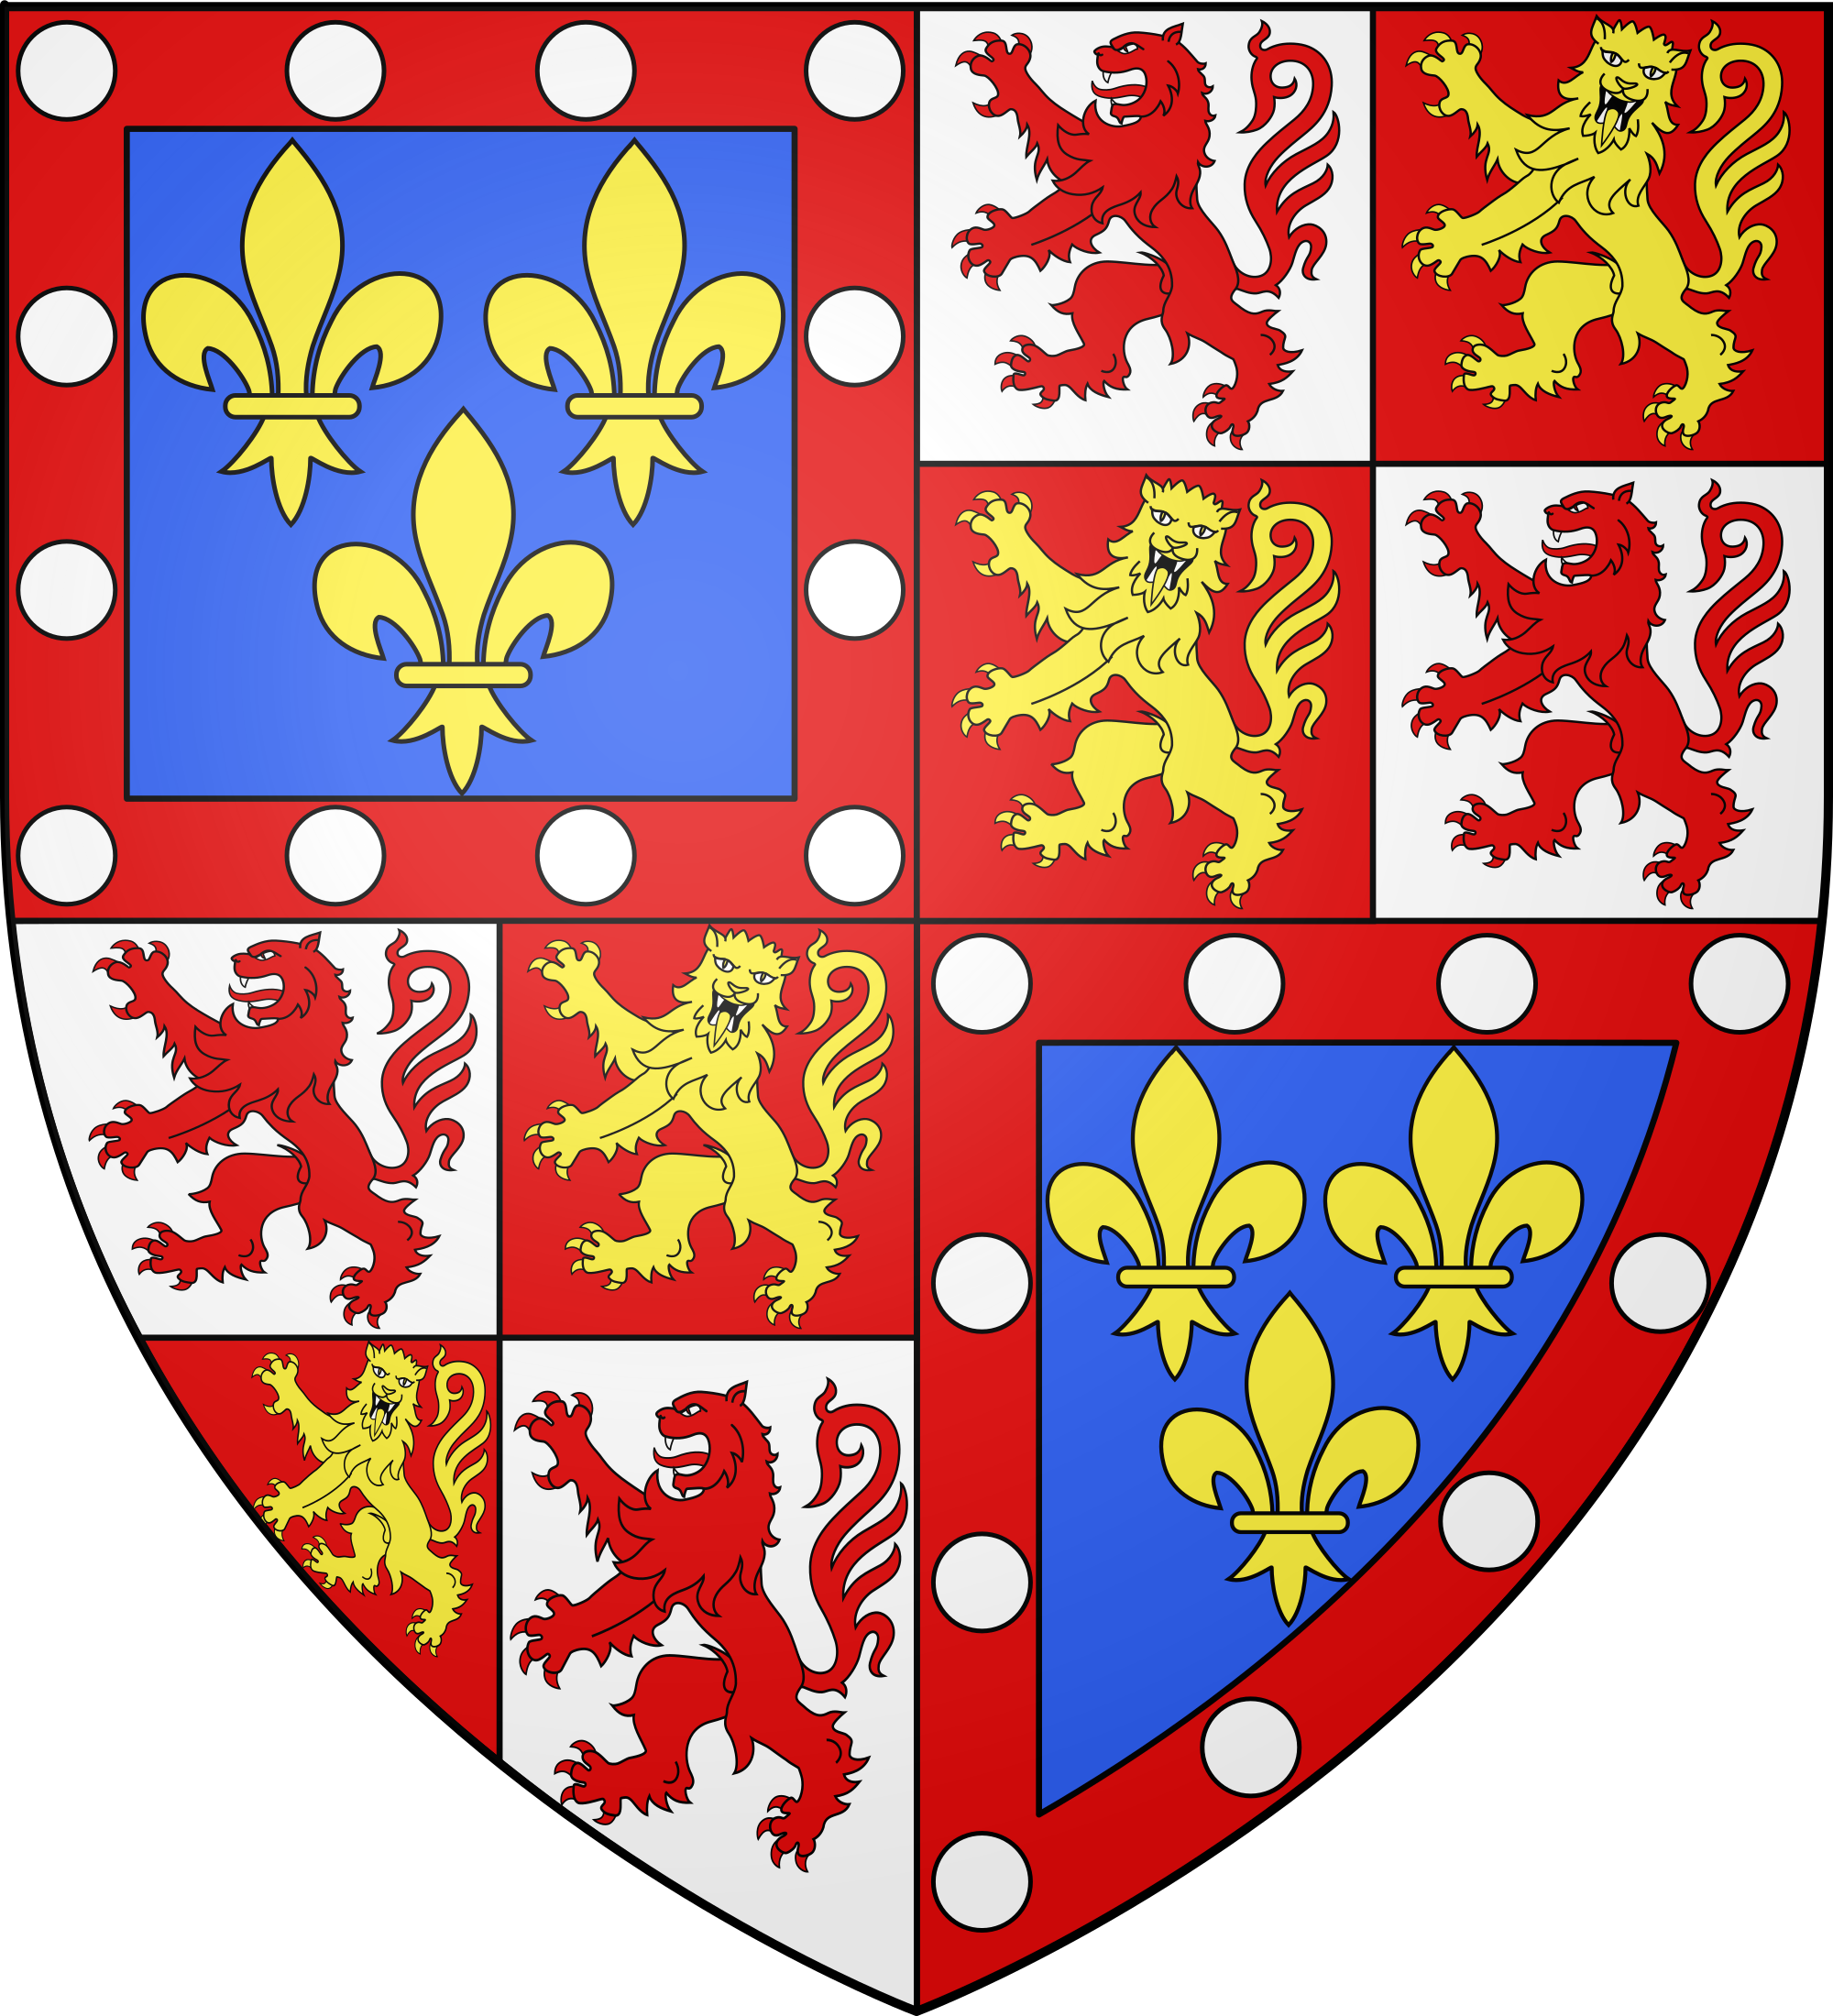 File:Armoiries Charles IV Alençon.svg.